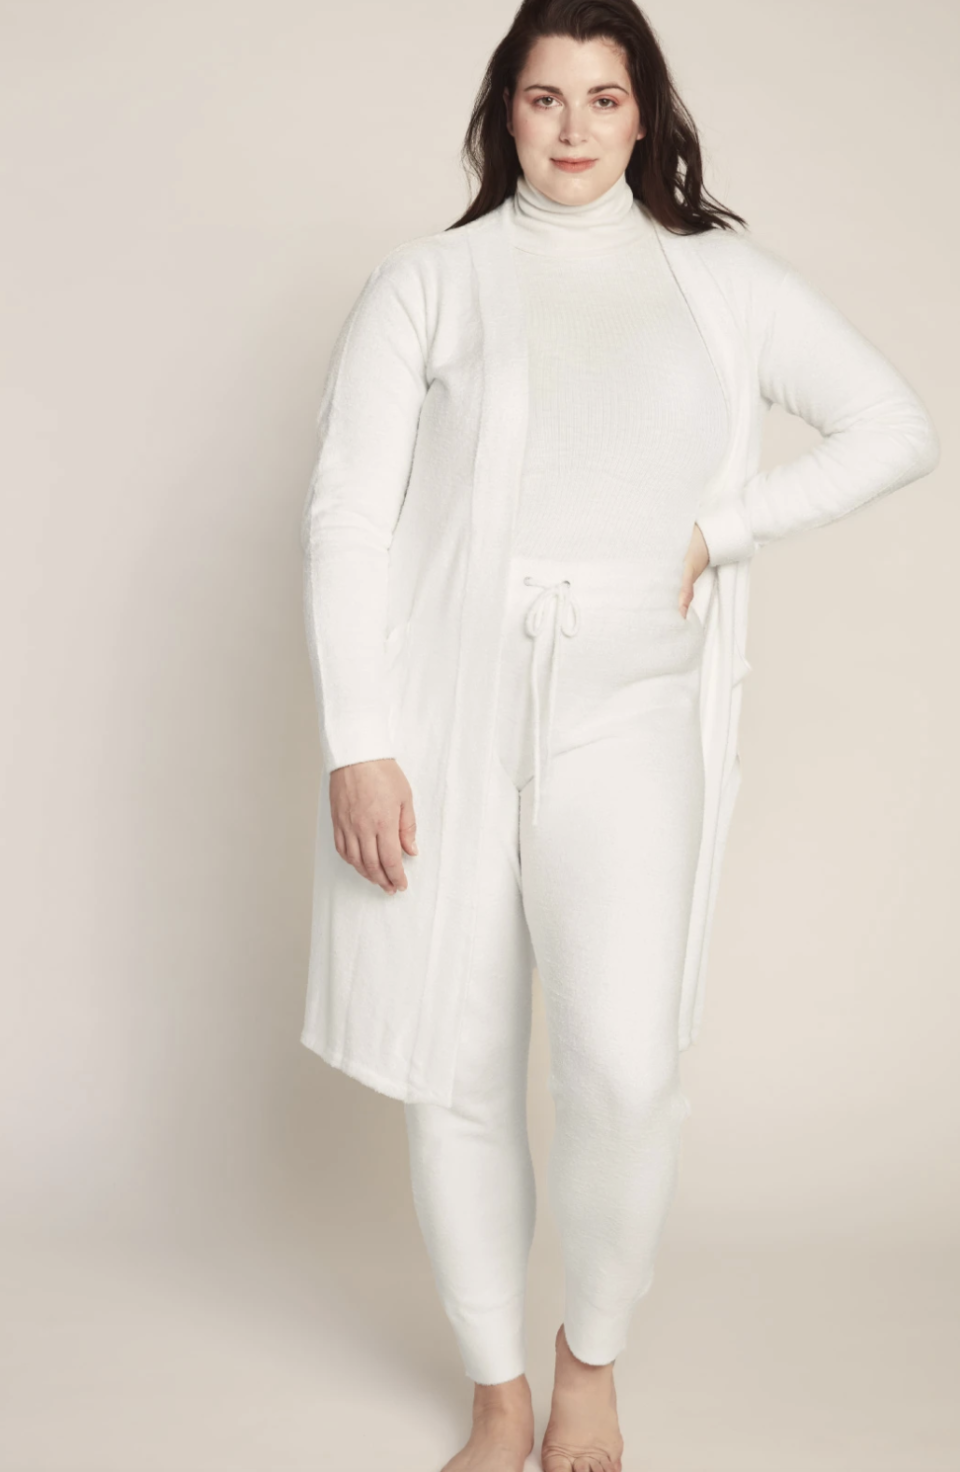 Cozzzy Lounge Cardigan from Knix, $80.